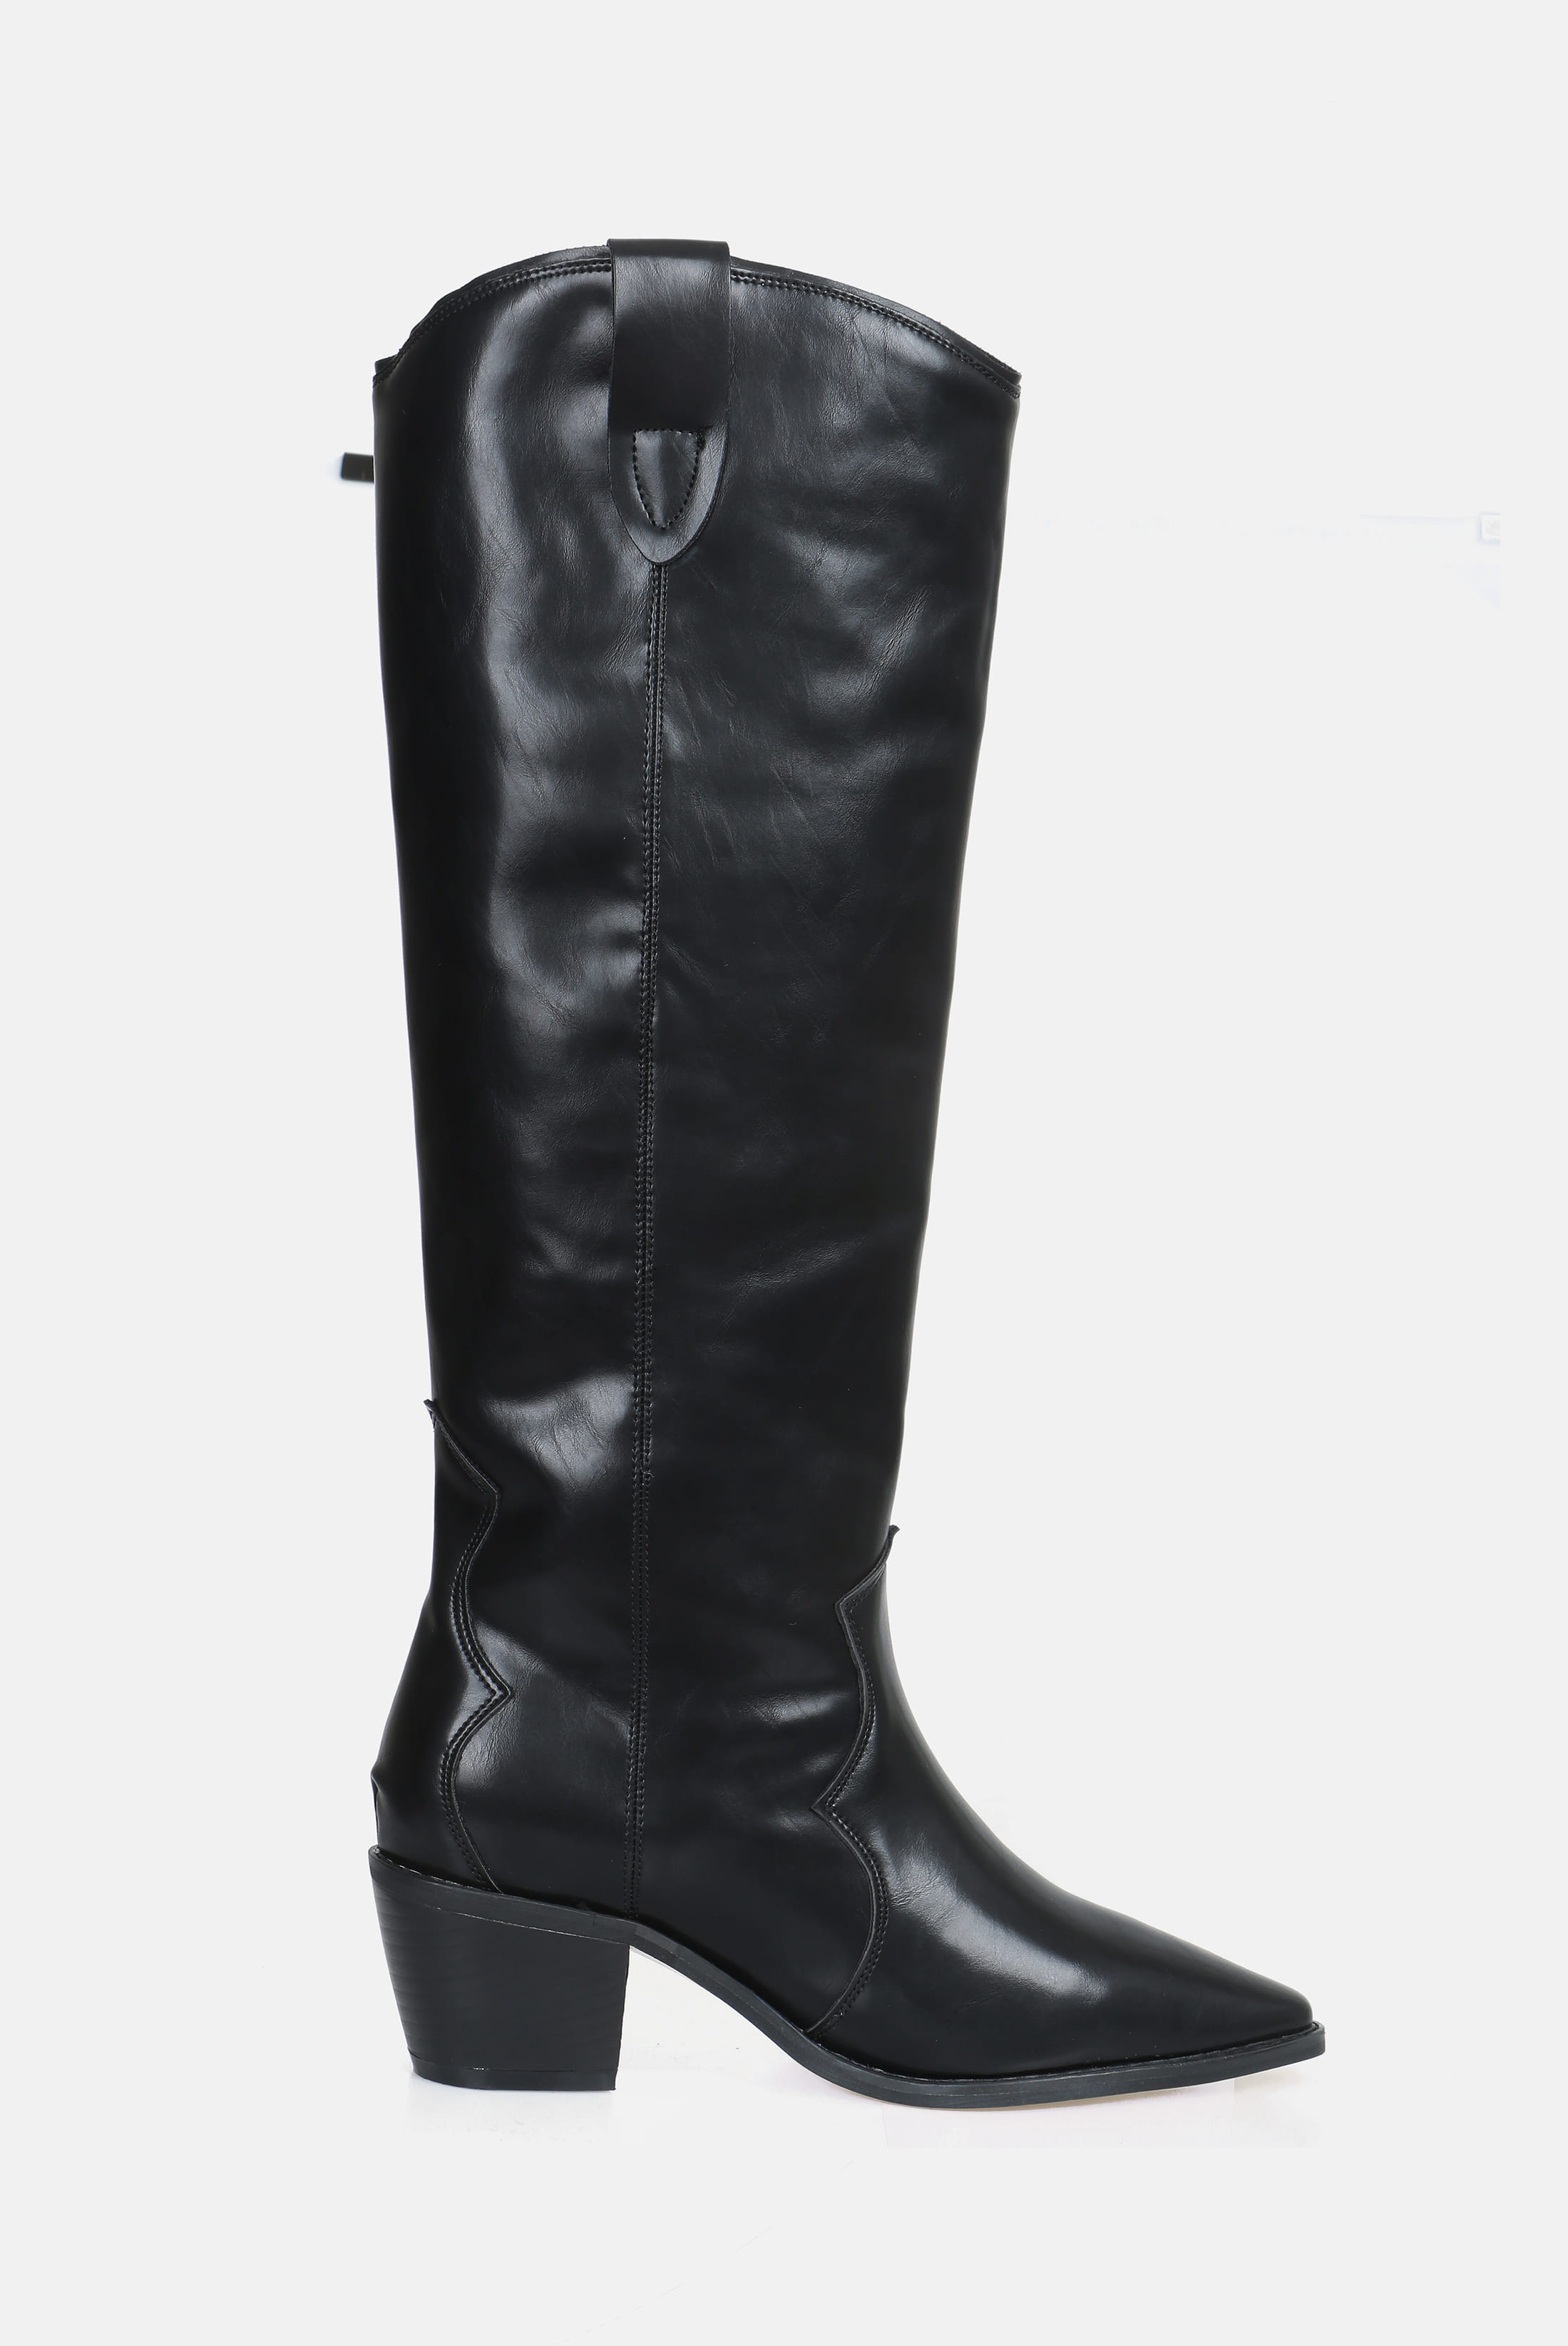 (W) Western_Leather Long_Boots